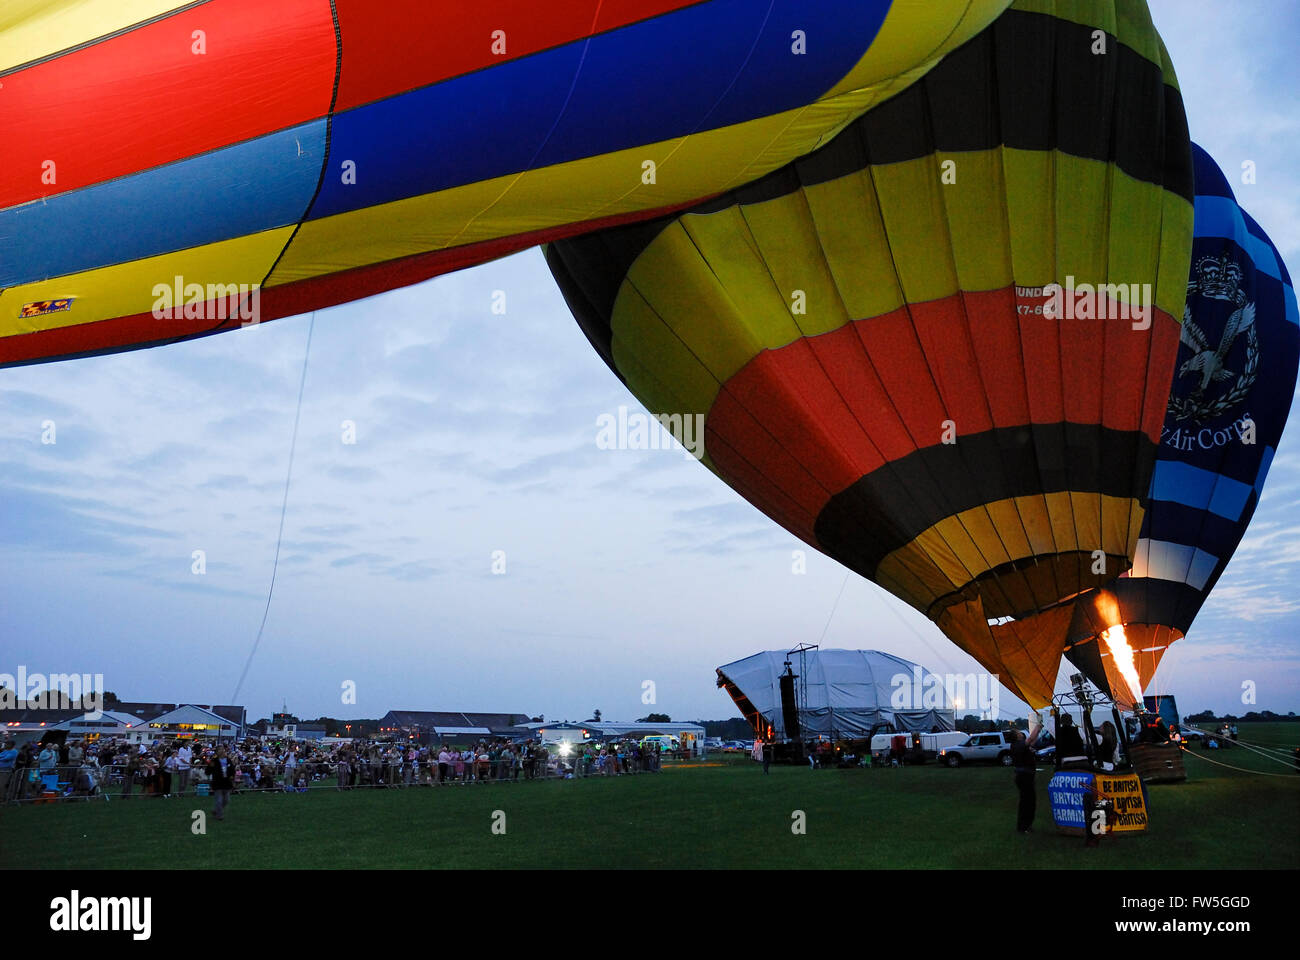 Airfield concert - balloons at the Sywell Aerodrome, Northamptonshire, UK. - Stock Image